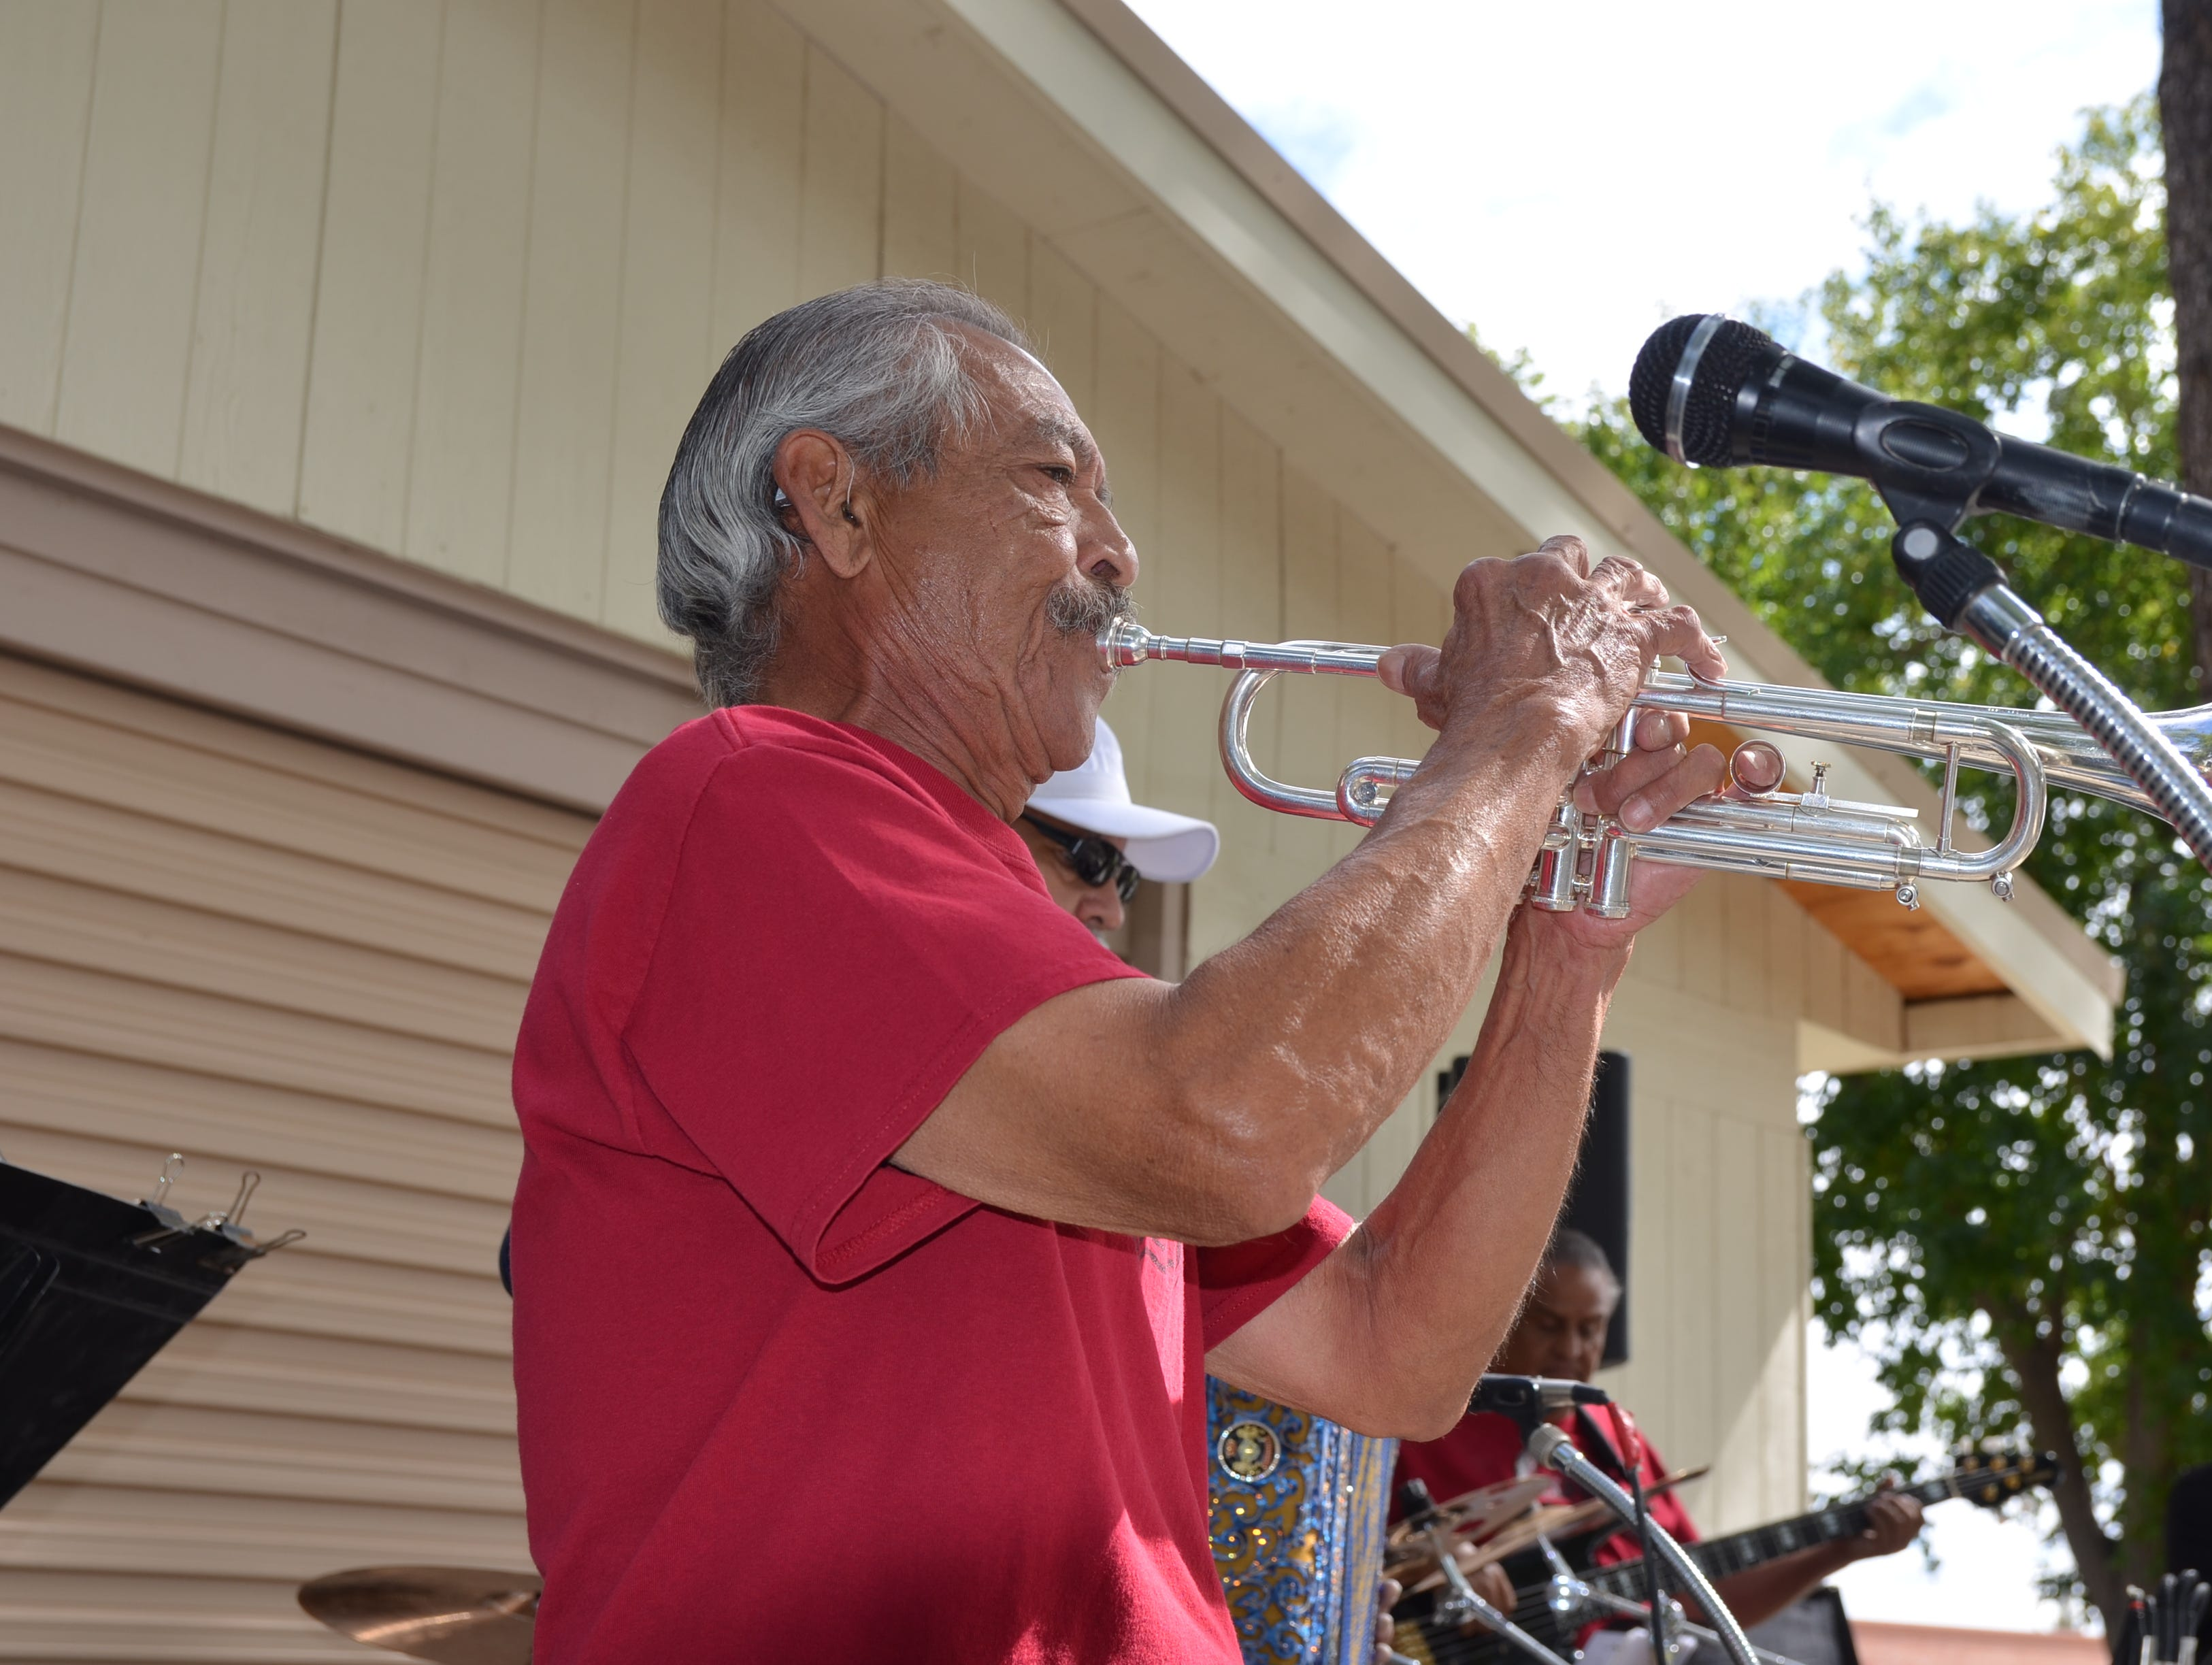 Carlos of the Alegria band played the trumpet during he and his bandmembers play Neon Moon by Brooks and Dunn.